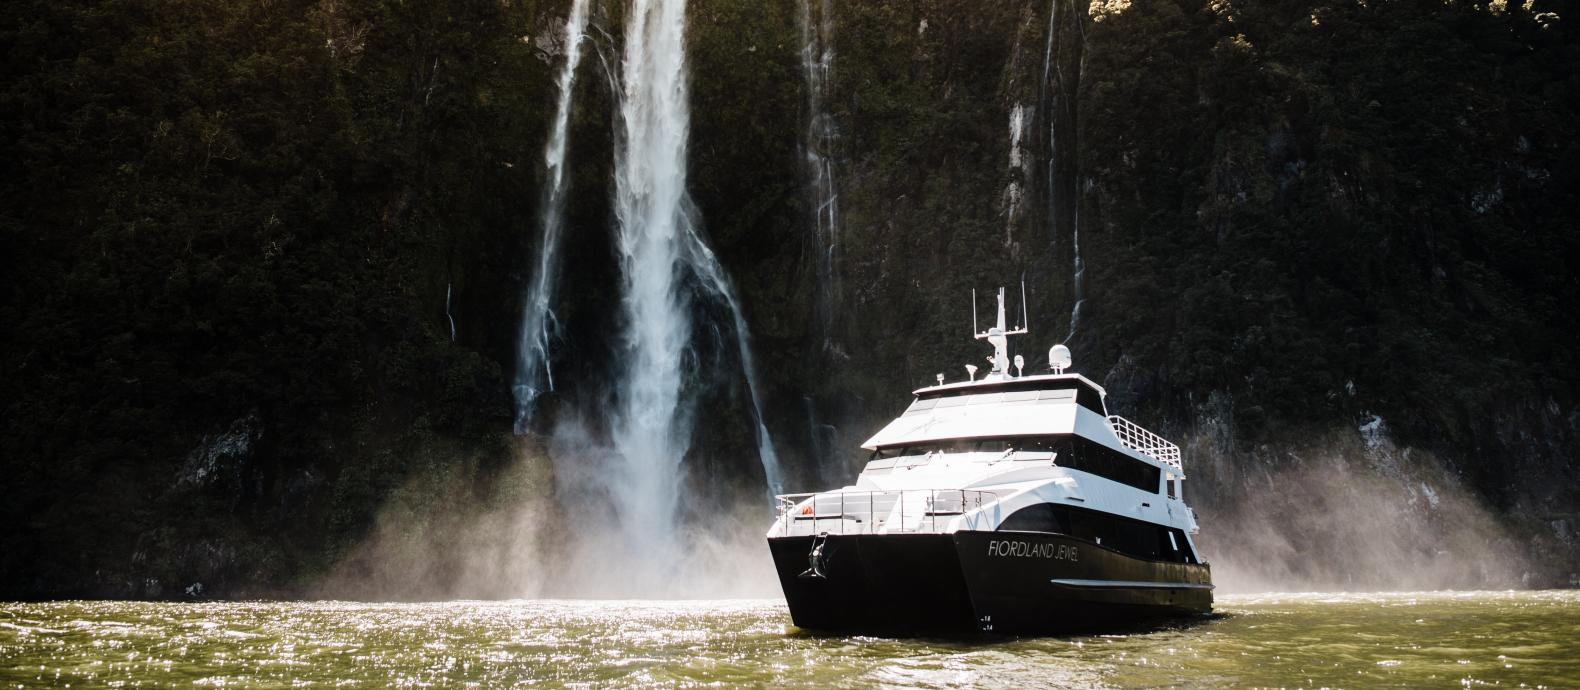 Ignition Self Drive Fiordland Discov 19 Boat